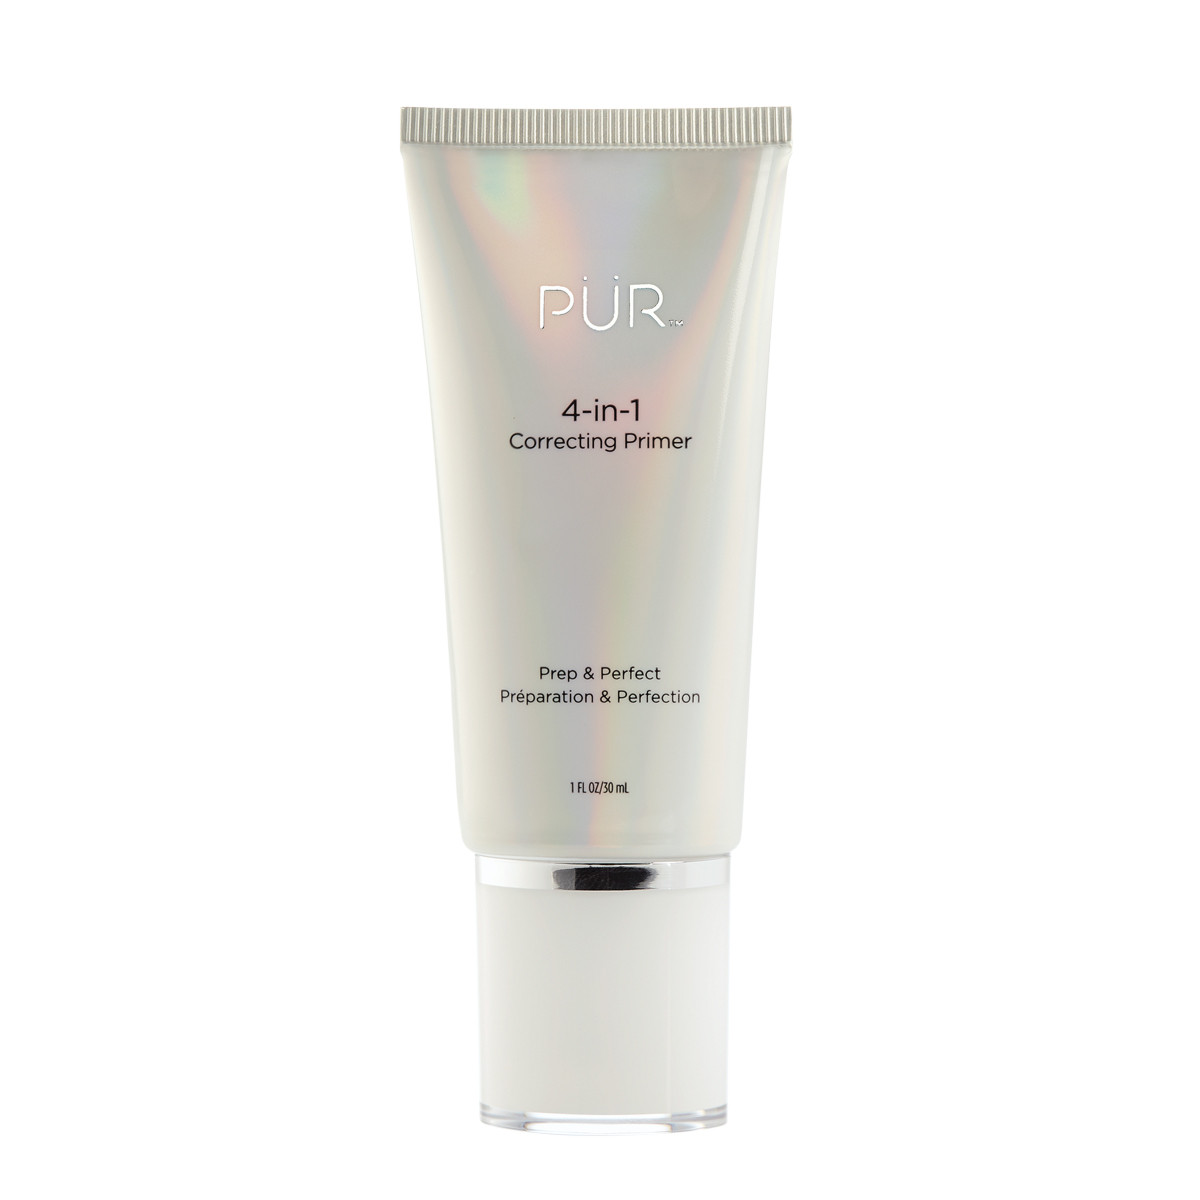 PÜR™ 4-in-1 Correcting Primer Prep & Perfect